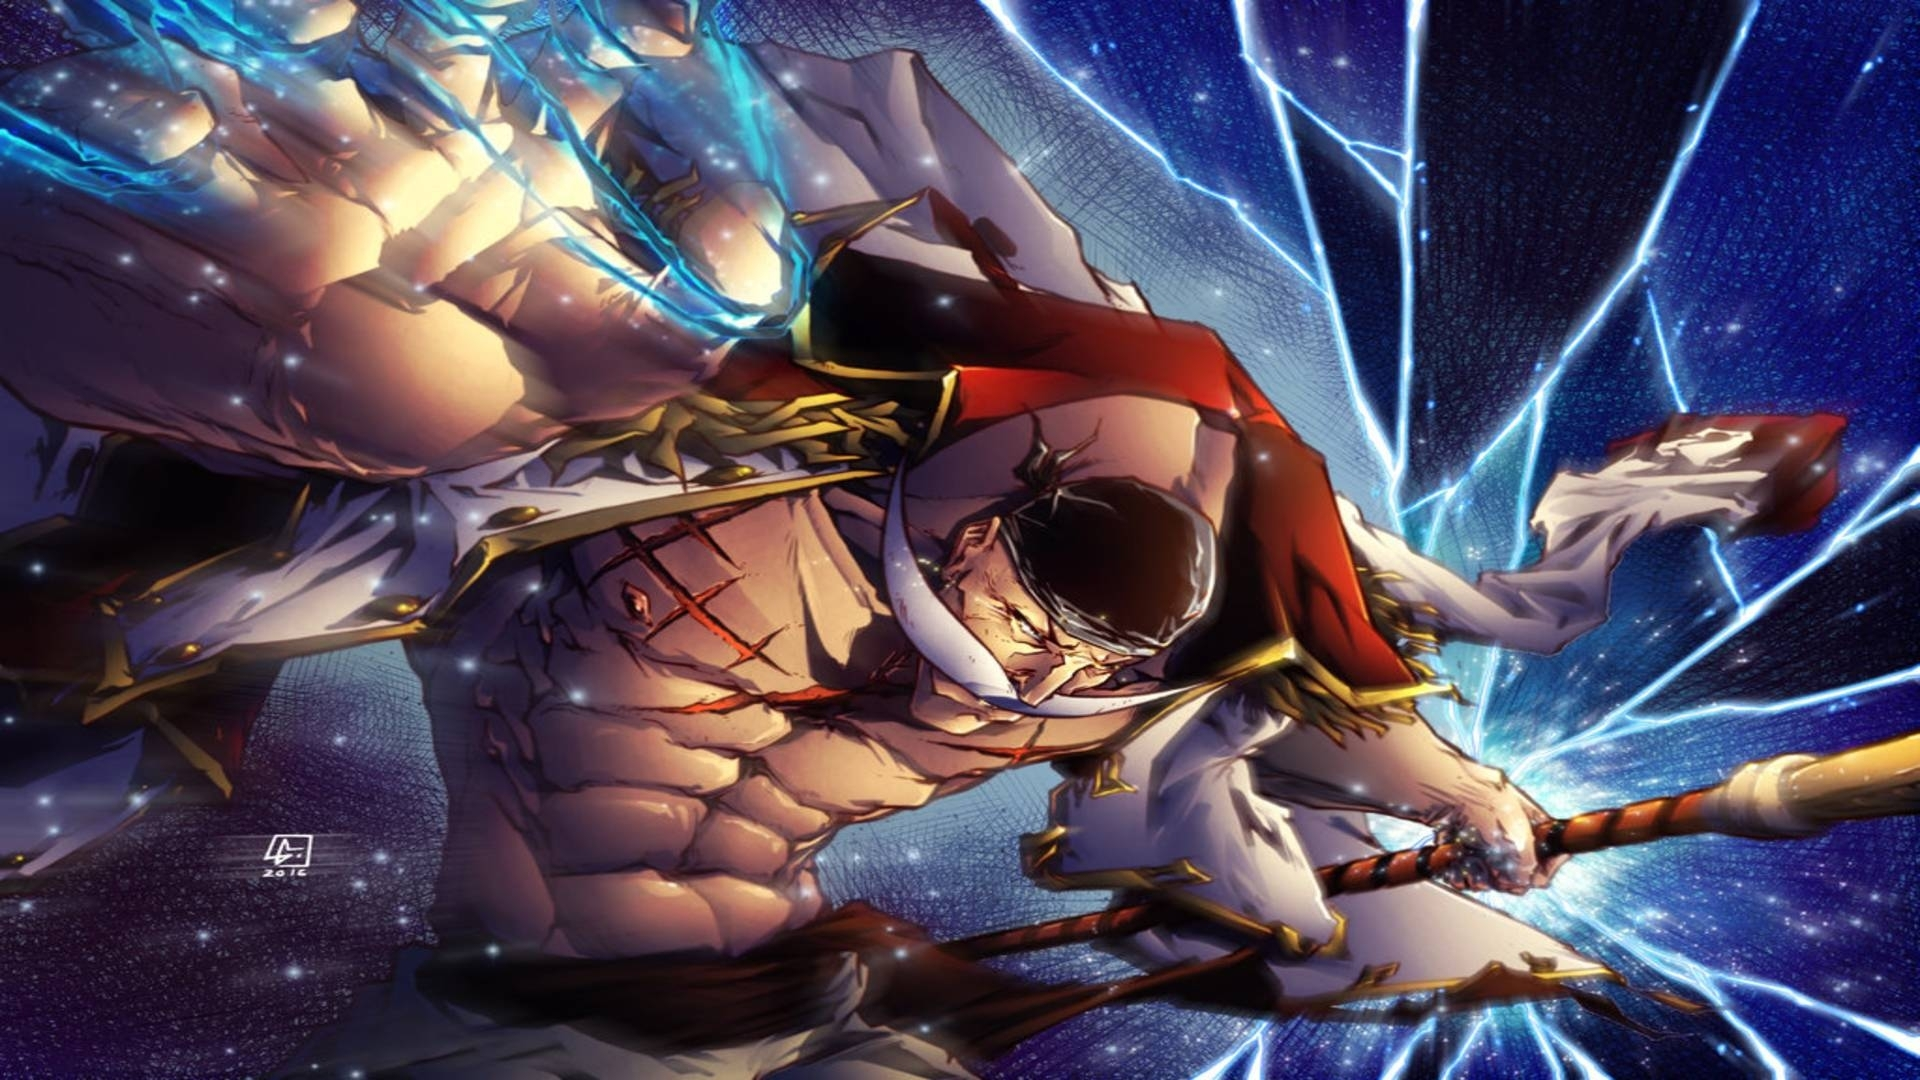 10 New One Piece Whitebeard Wallpaper FULL HD 1080p For PC Background 2019